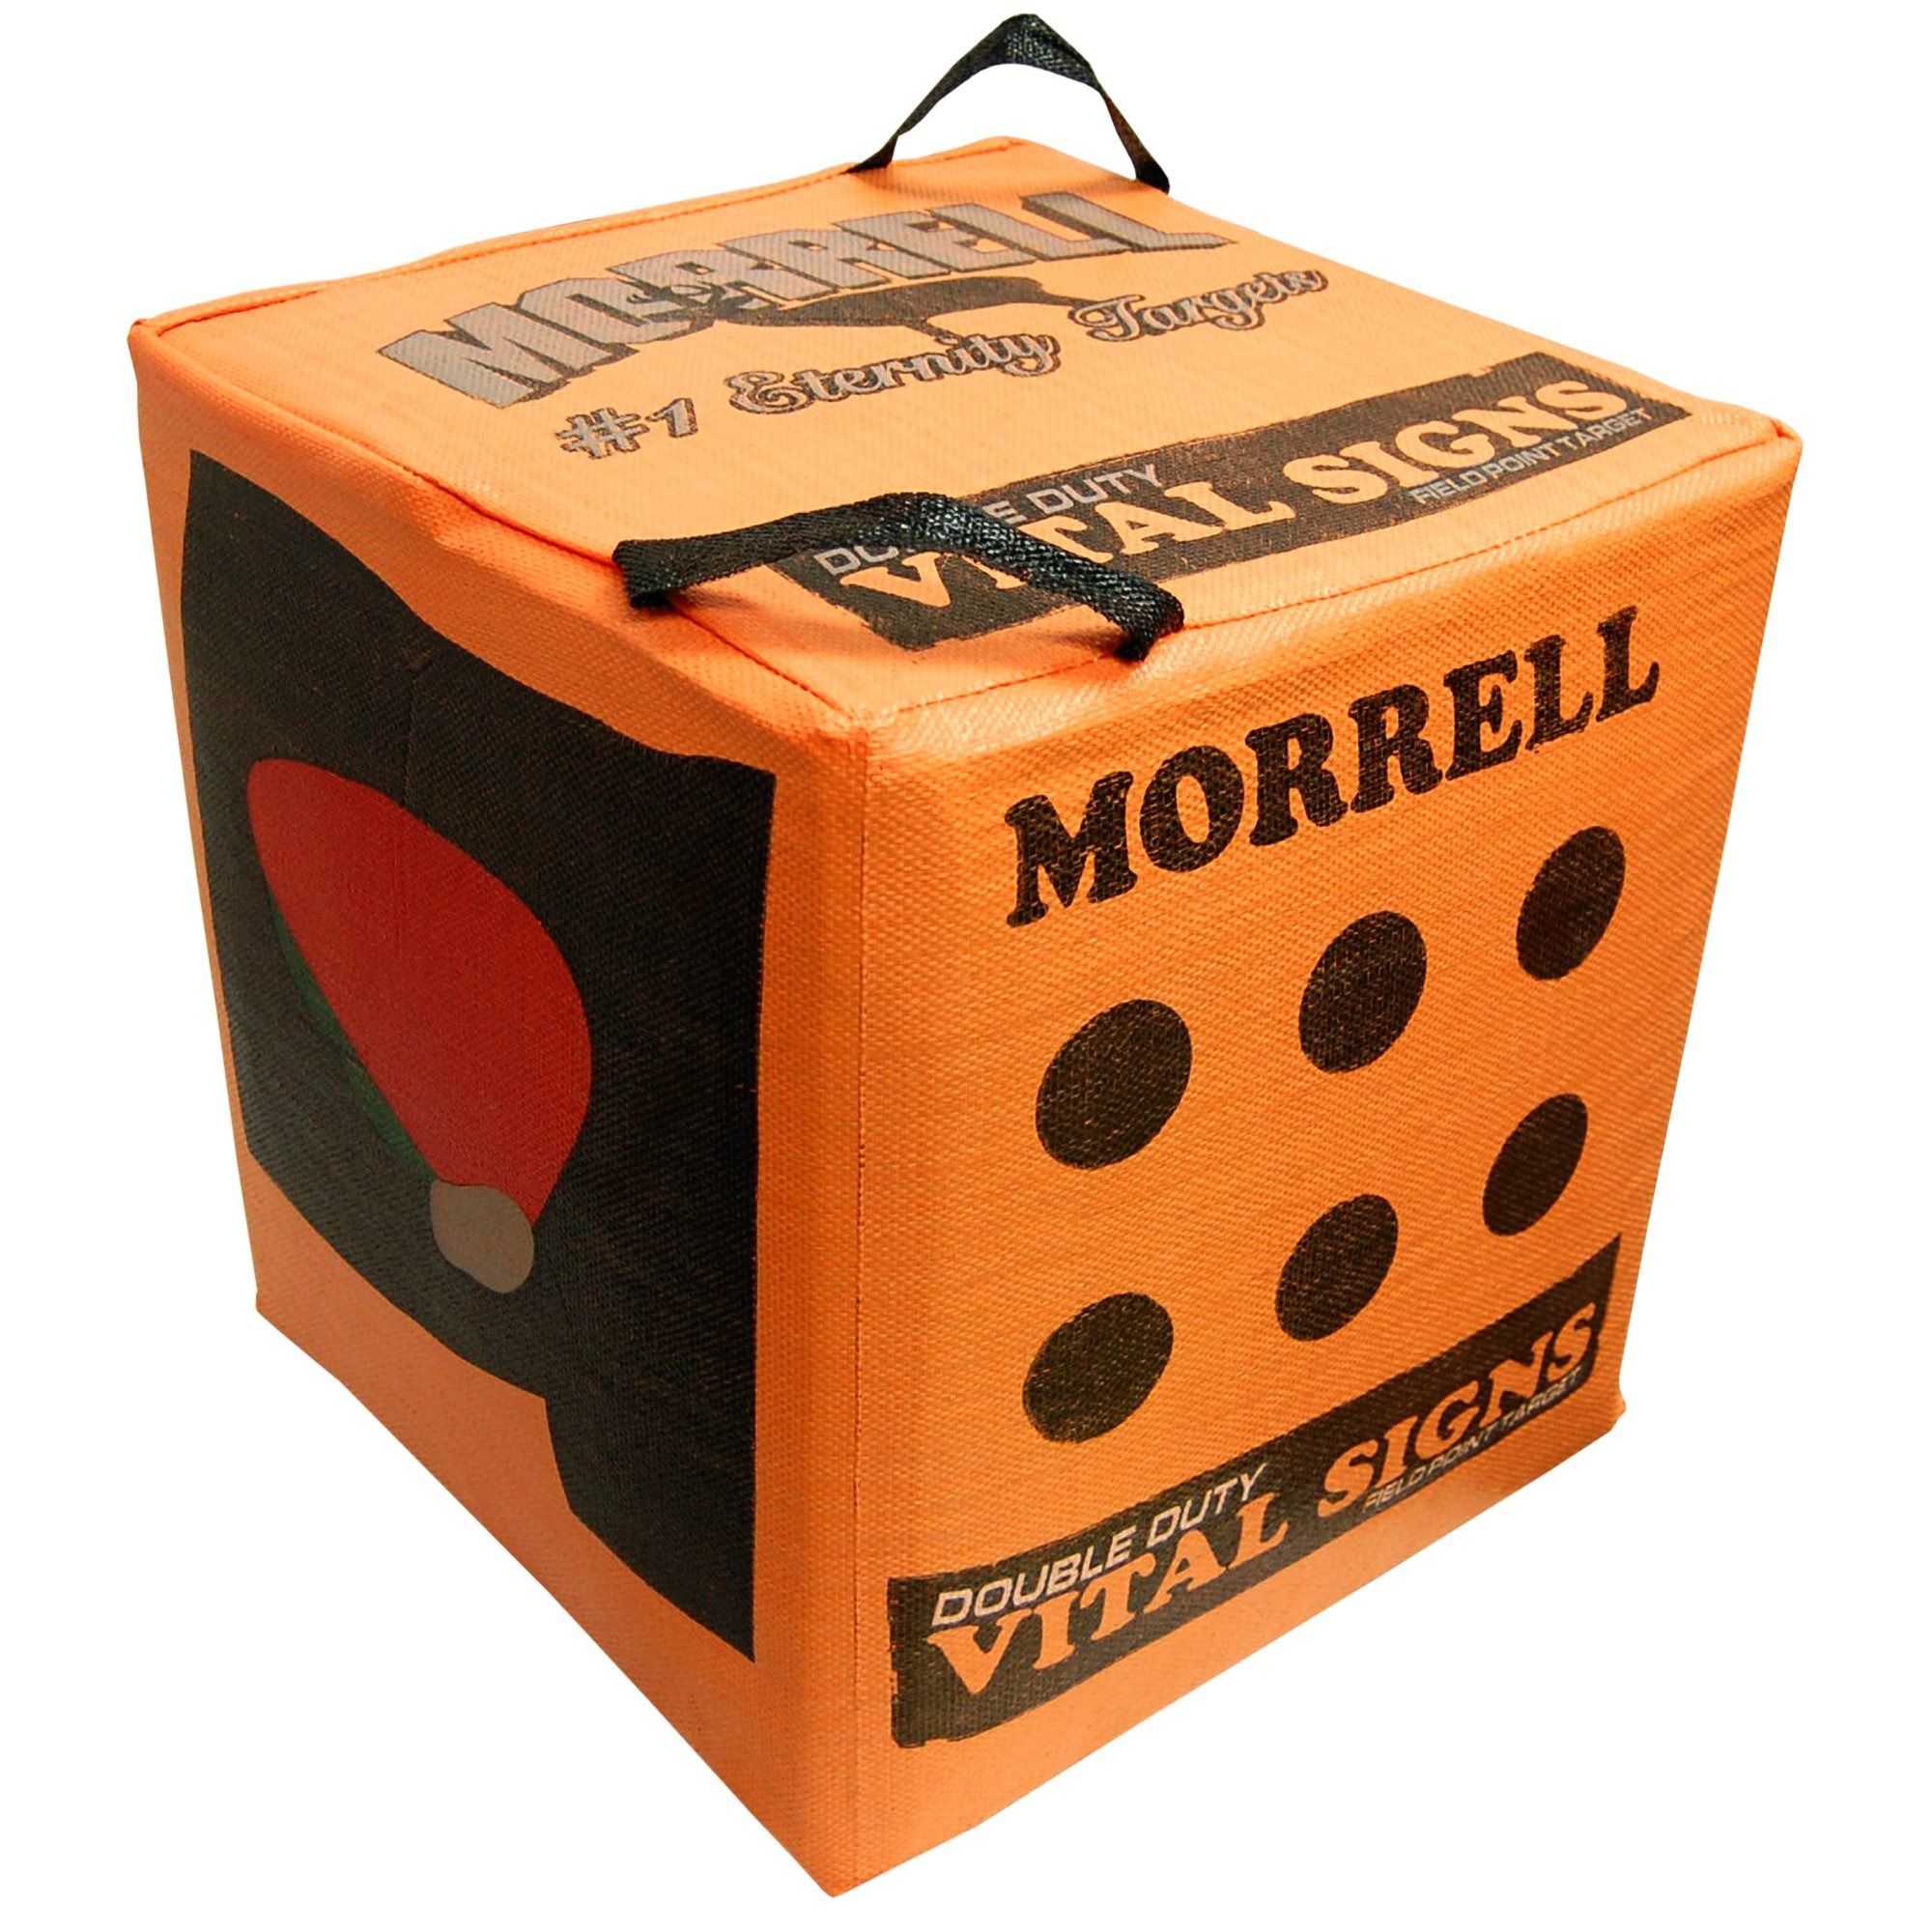 Morrell Double Duty Vital Signs Field Point Bag Cube Archery Target - Deer, Bear and Turkey Vitals